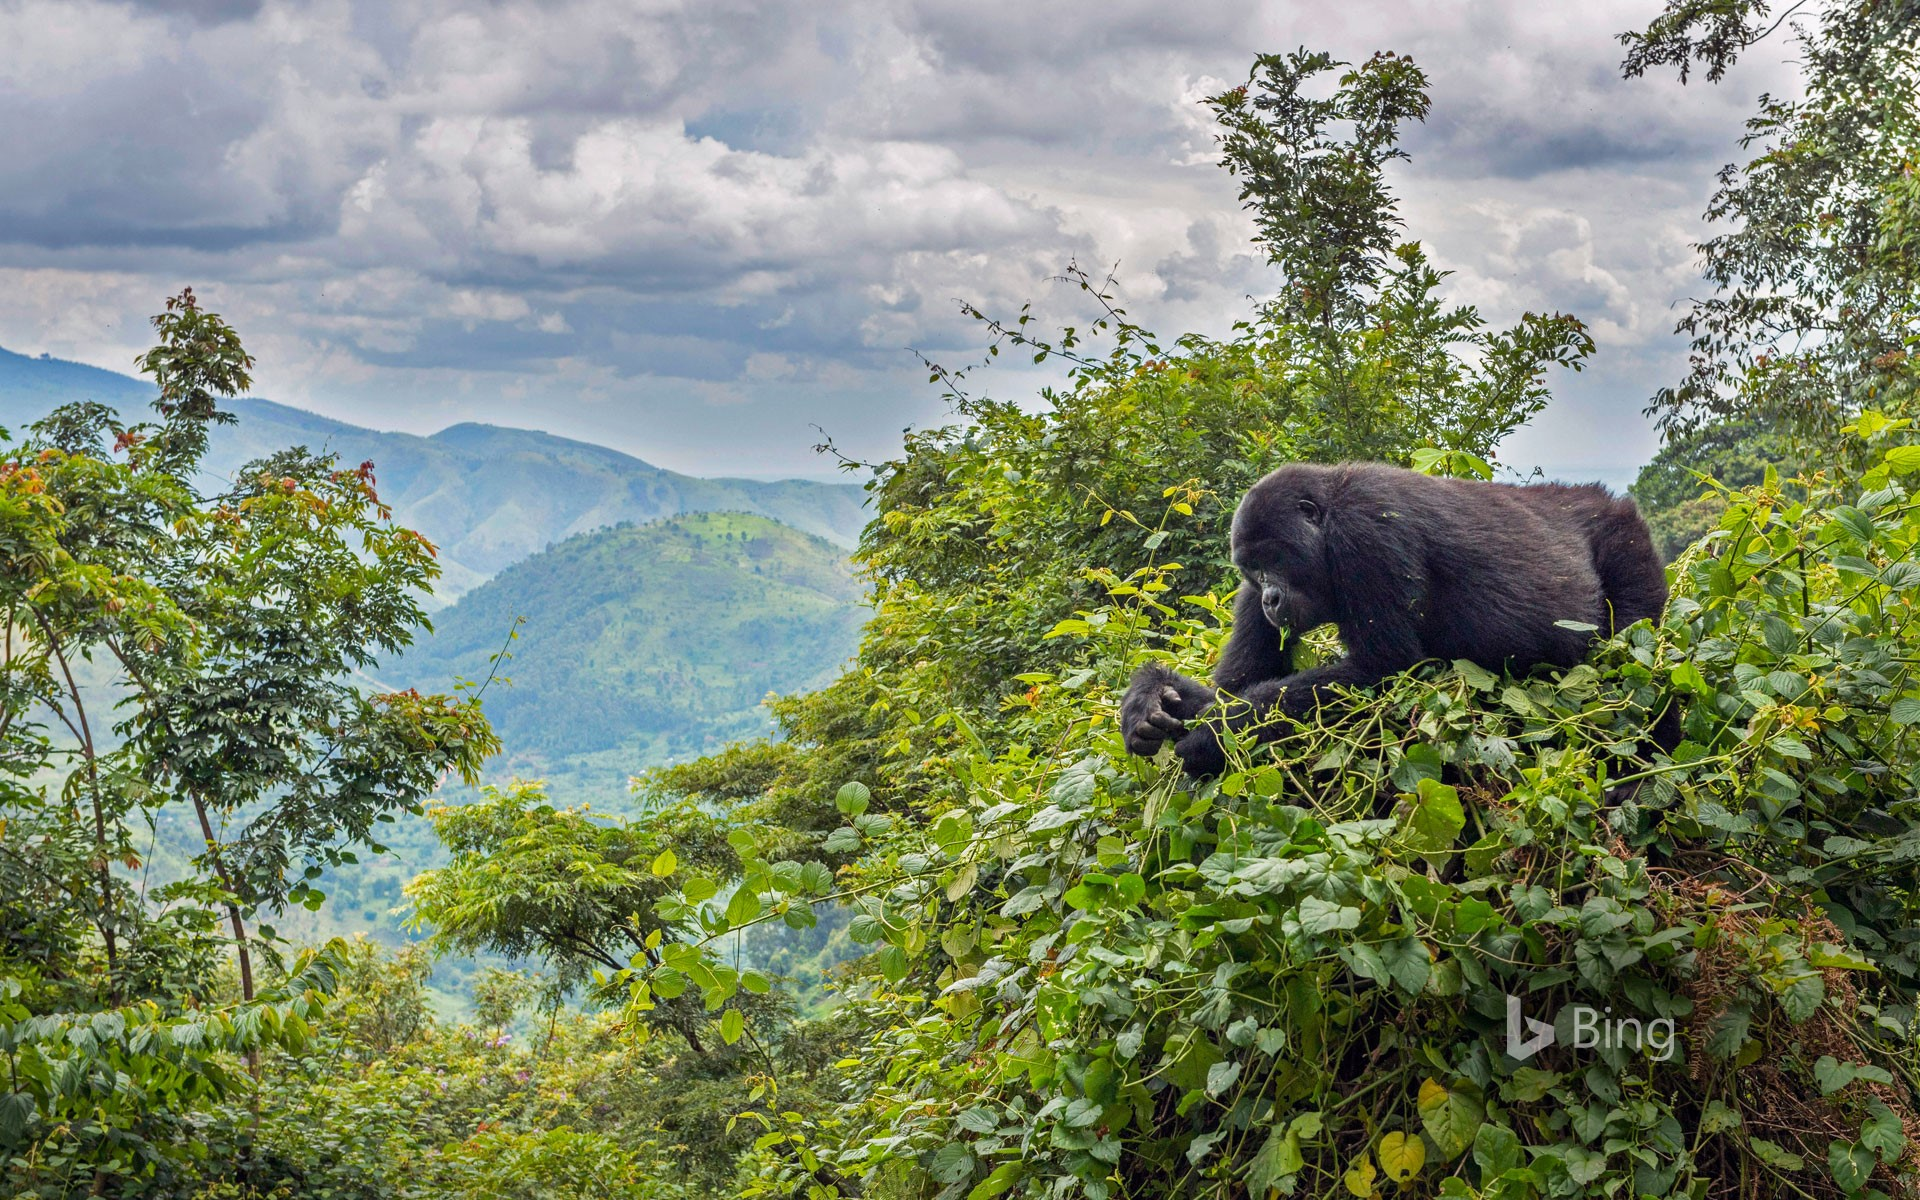 A mountain gorilla eating in a tree, Bwindi Impenetrable National Park, Uganda